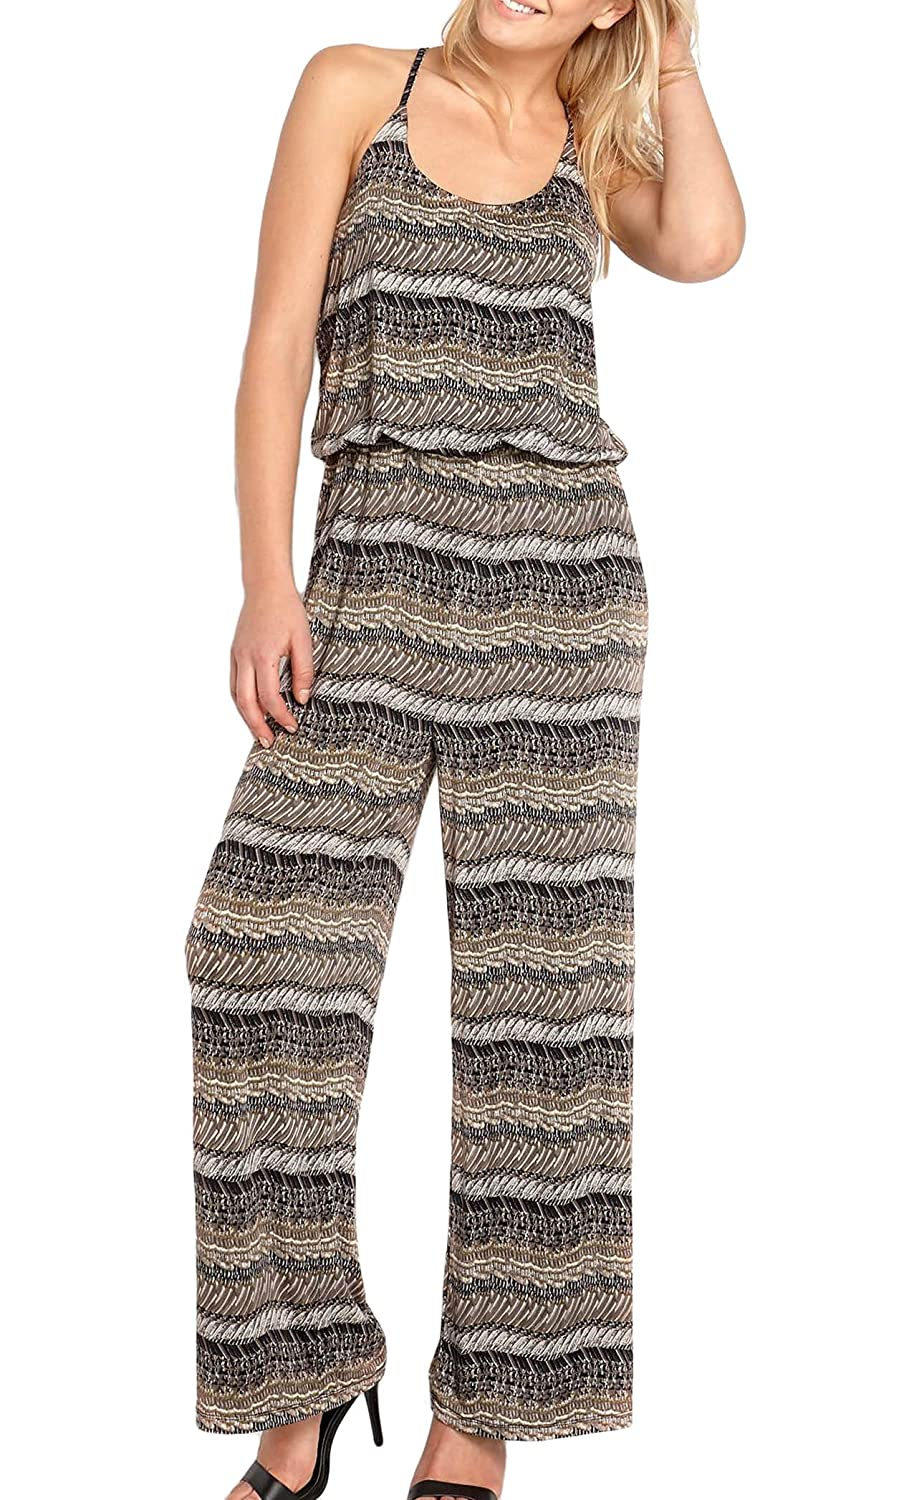 TopsandDresses Ladies Black Beige Patterned Jumpsuit in UK Sizes 6-26